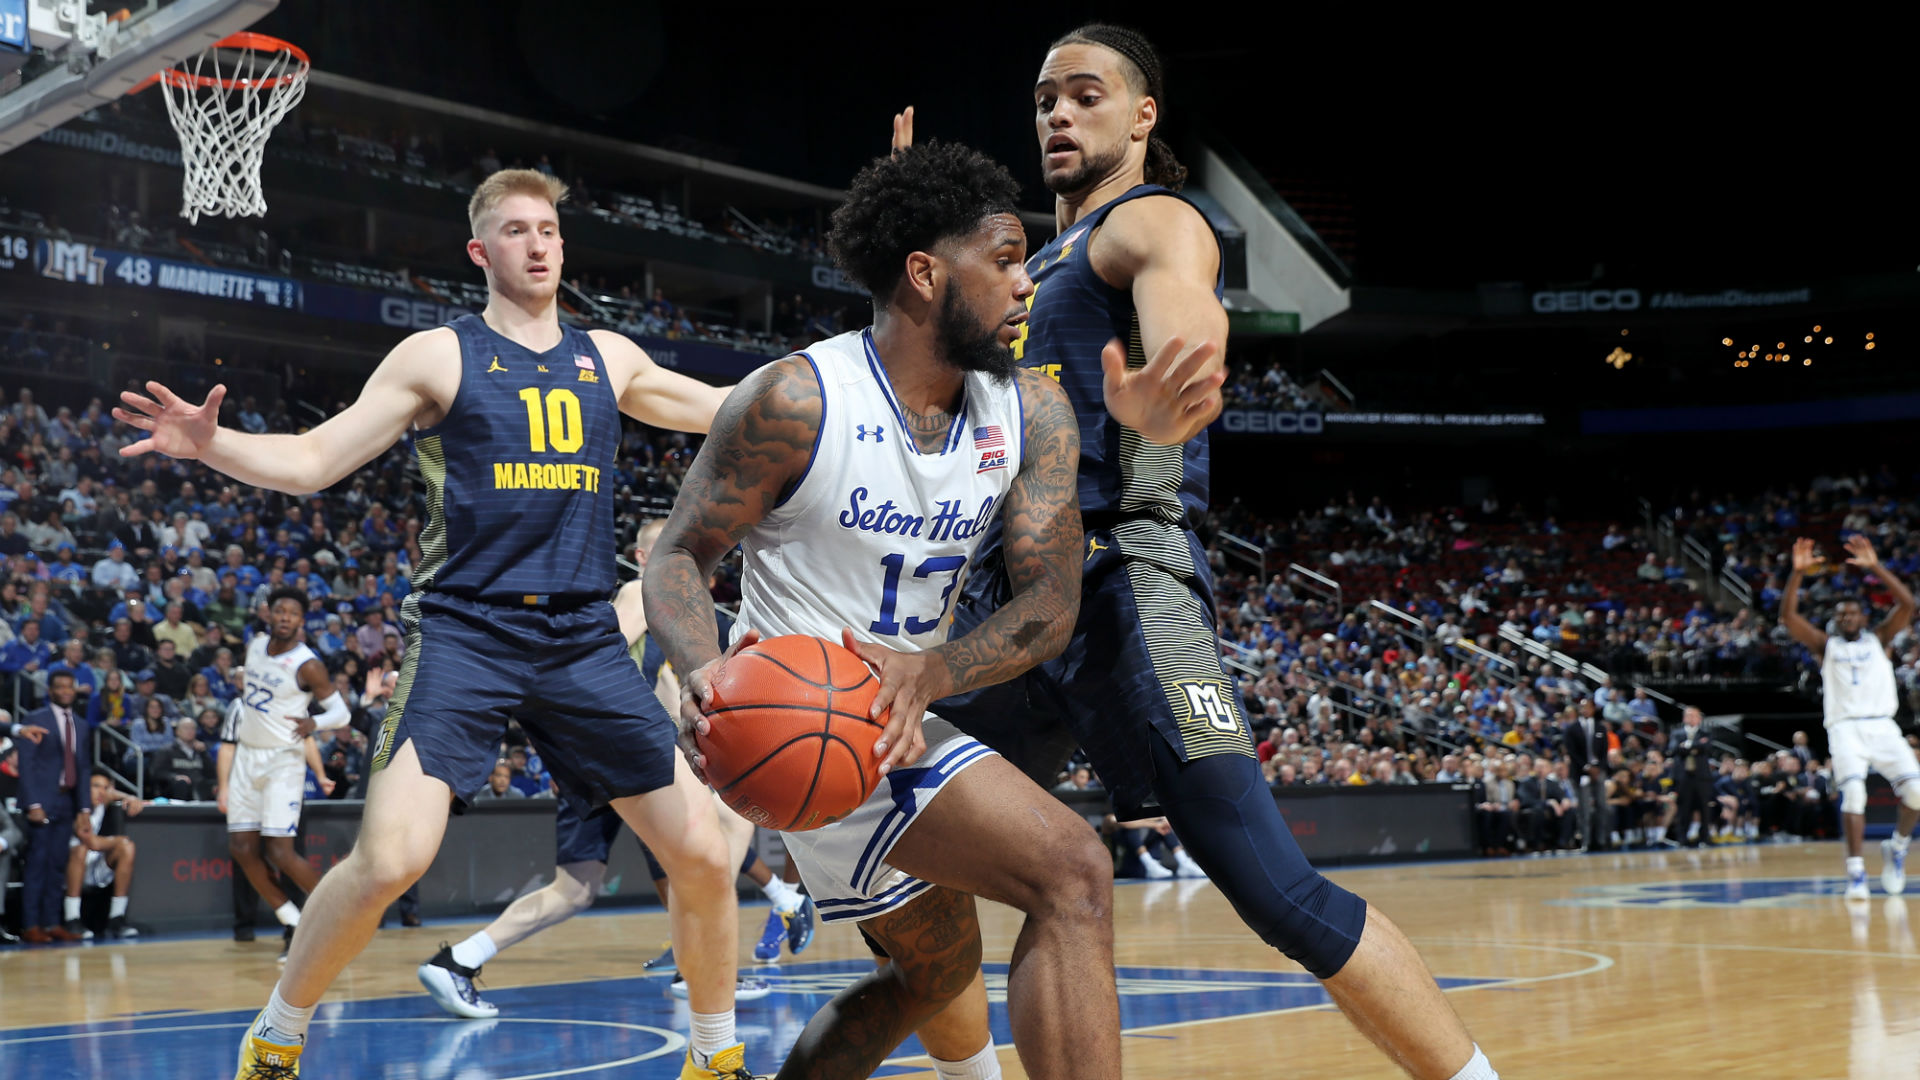 March Madness 2019 Bubble Watch: Seton Hall Secures Win